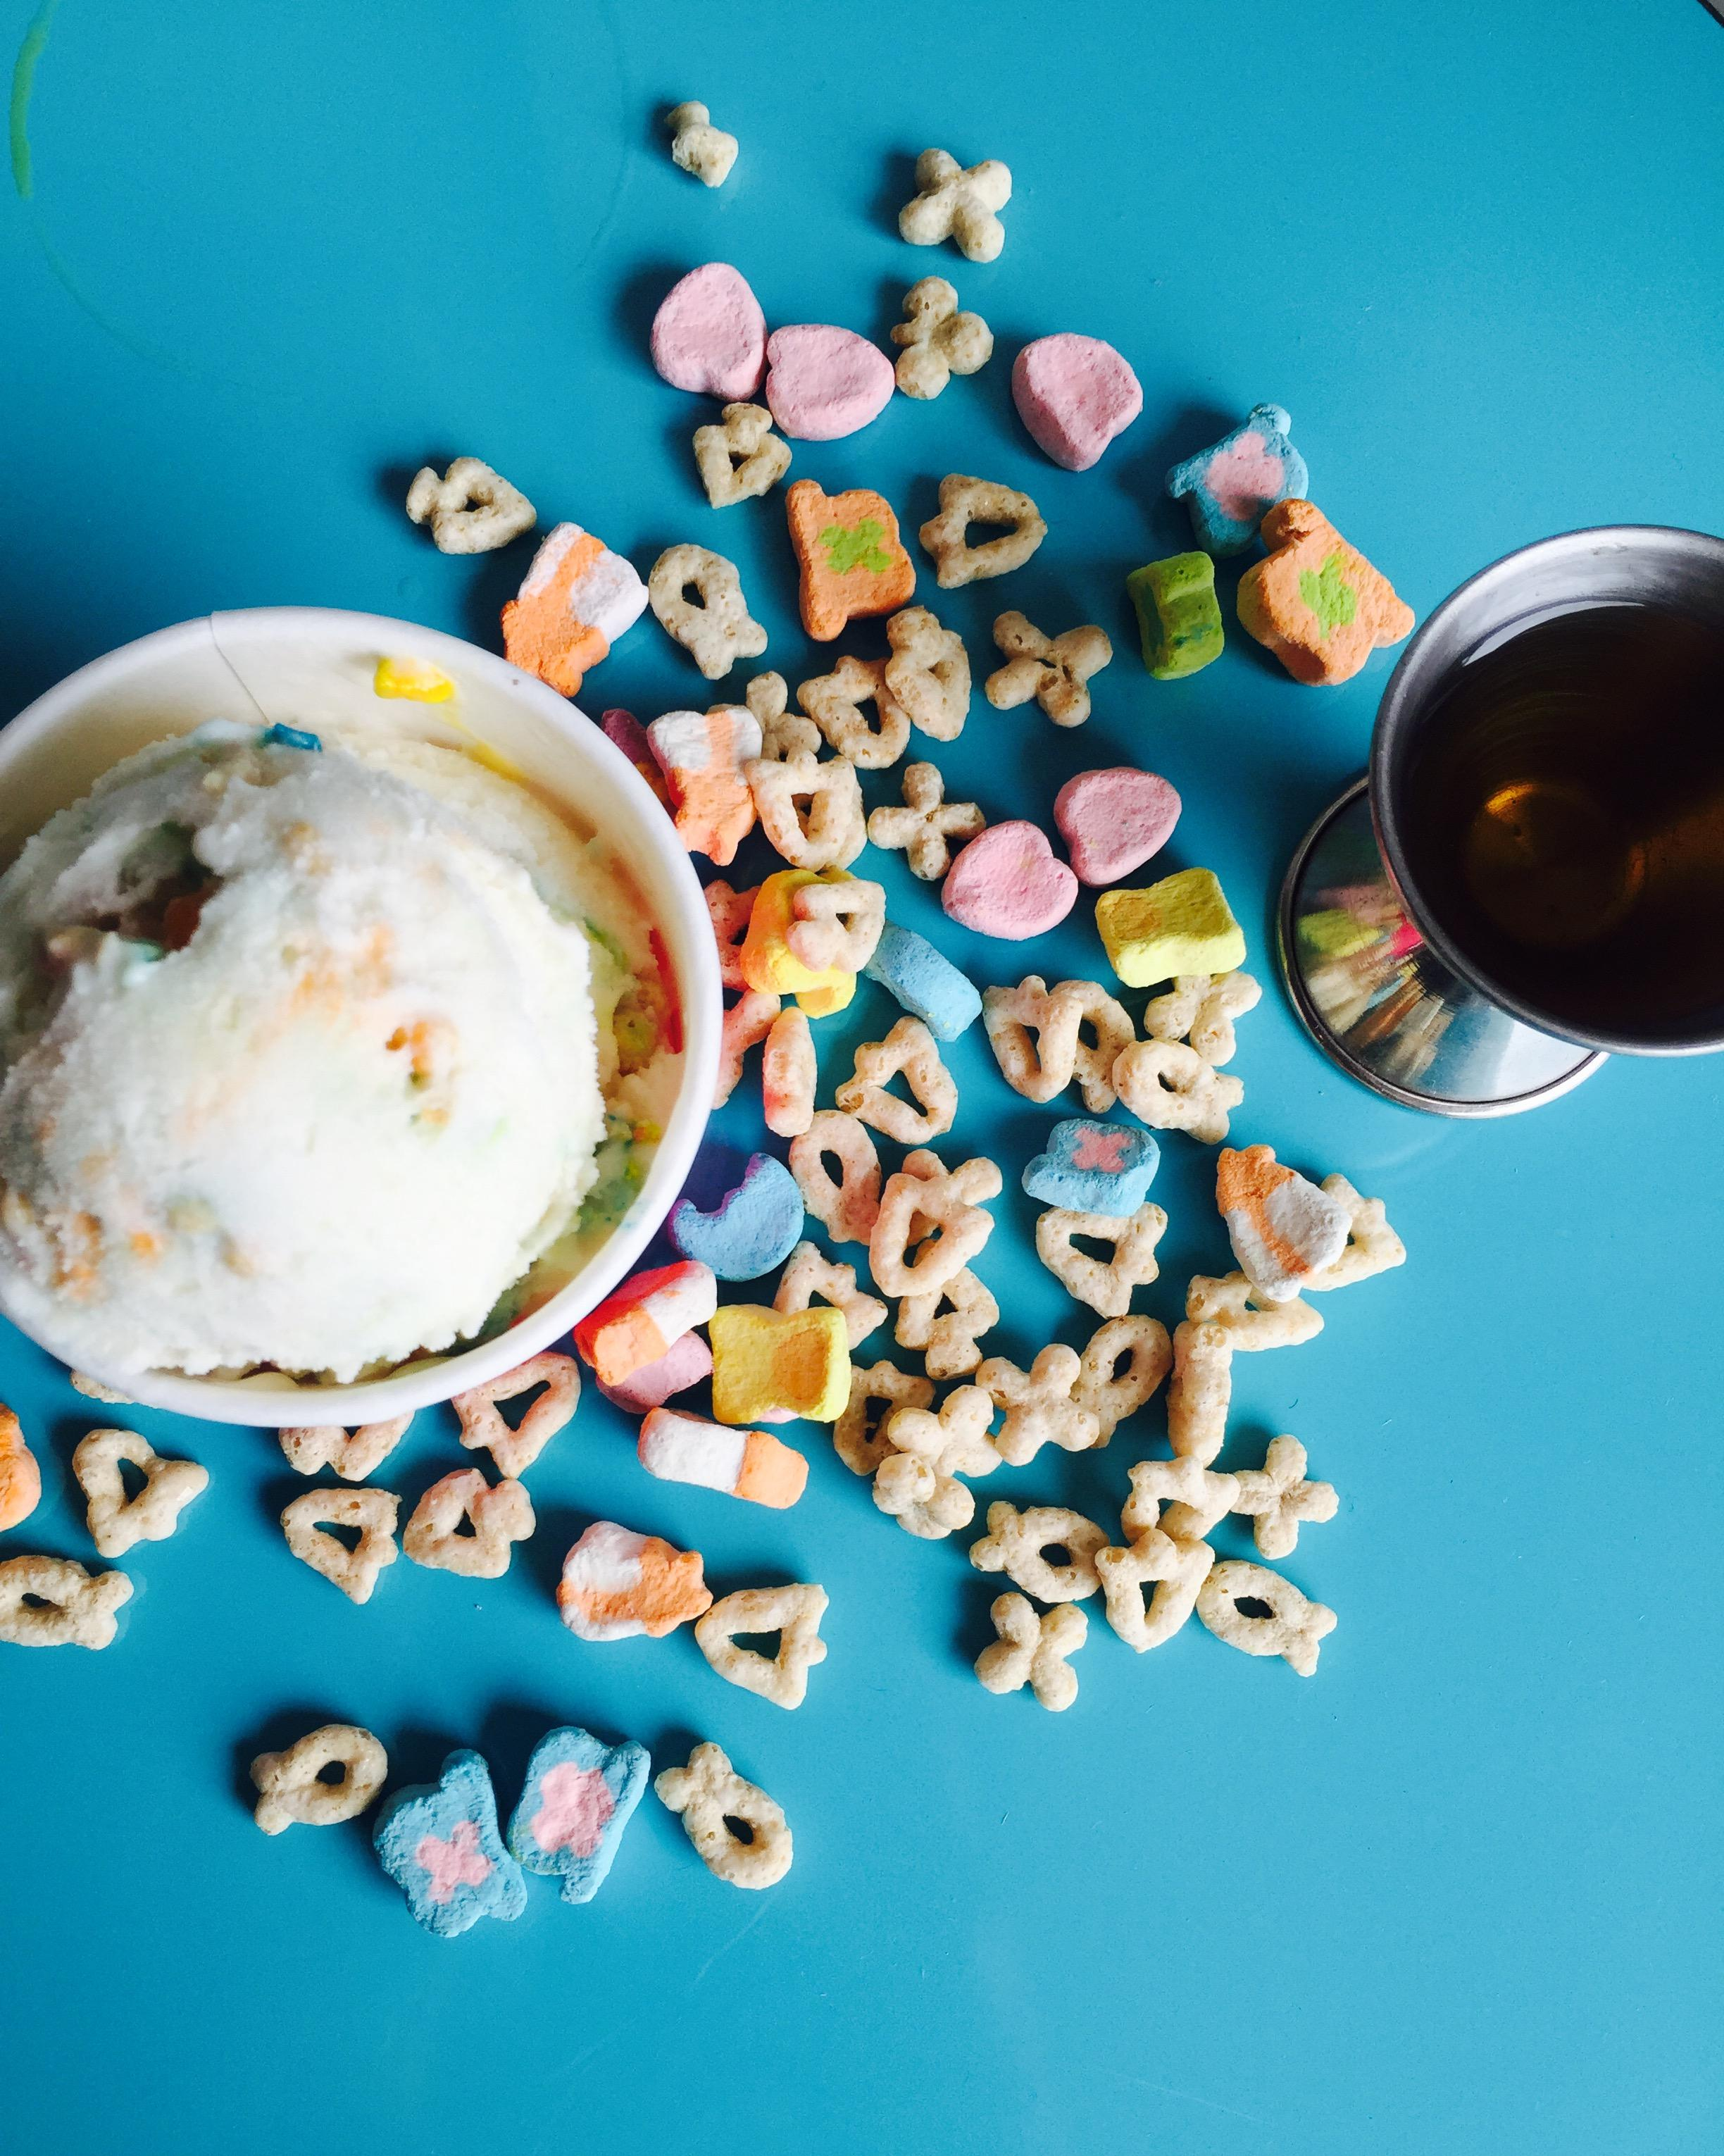 whiskey-luckycharms-coolhaus-0615